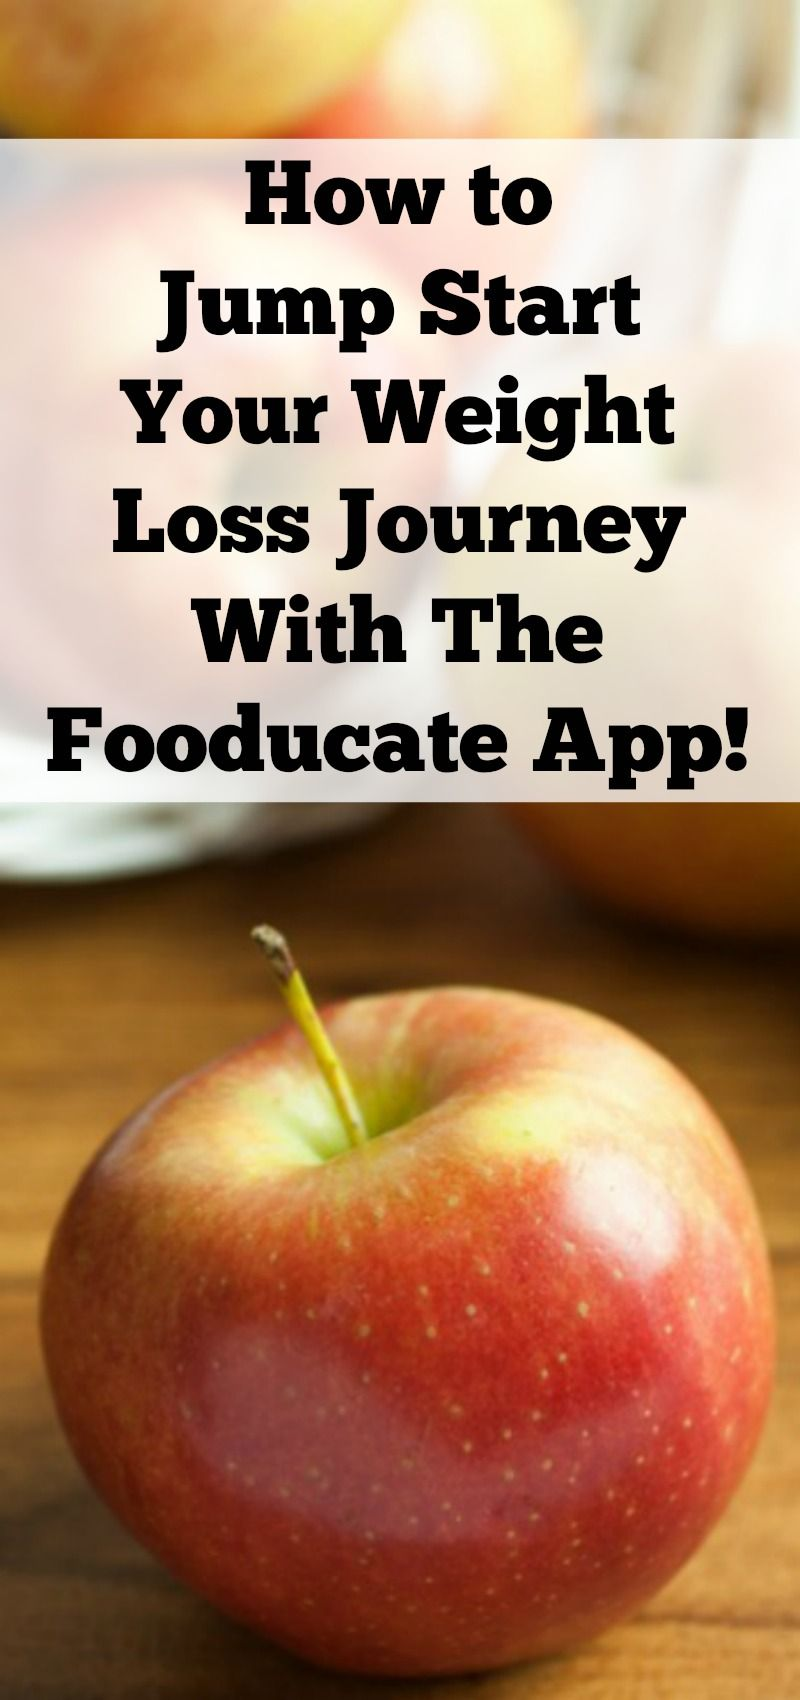 How to Jump Start Your Weight Loss Journey With the Fooducate App. easy weight loss advice